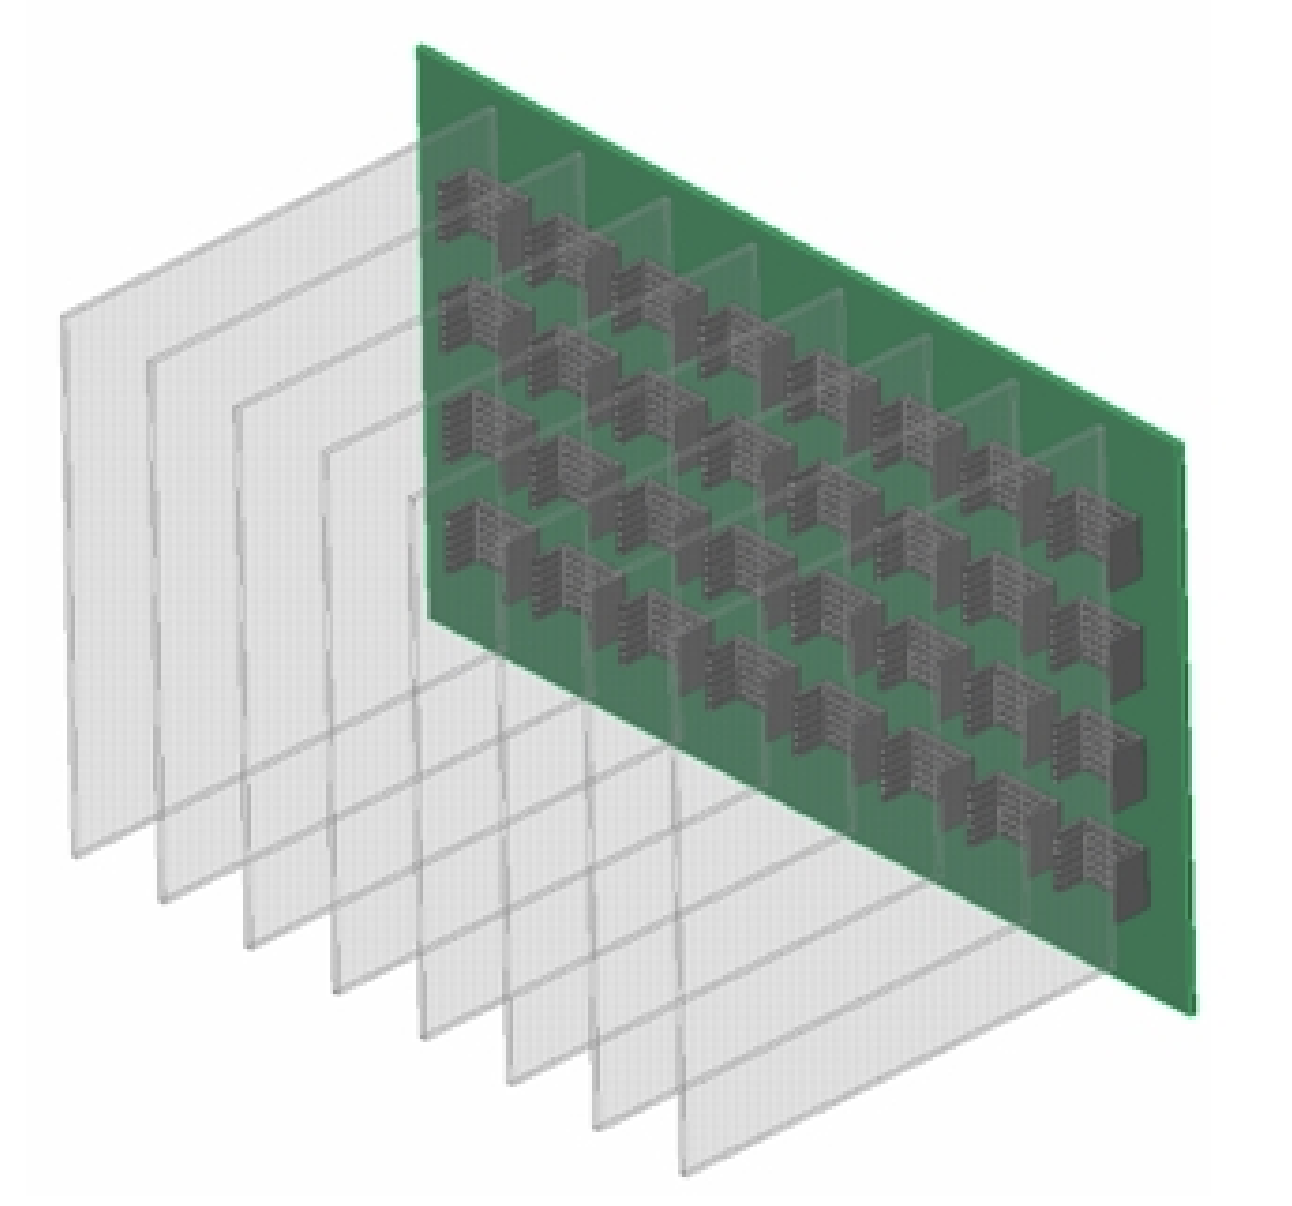 Component Placement Strategies In Multi Board Pcb Systems Printed Circuit Fabrication Single Layer To High 26 Layers The Shelf Is Populated With Pcbs Loaded Vertical Orientation And They Are Connected Using A 19 X 12 Backplane That Assembled At Rear Of